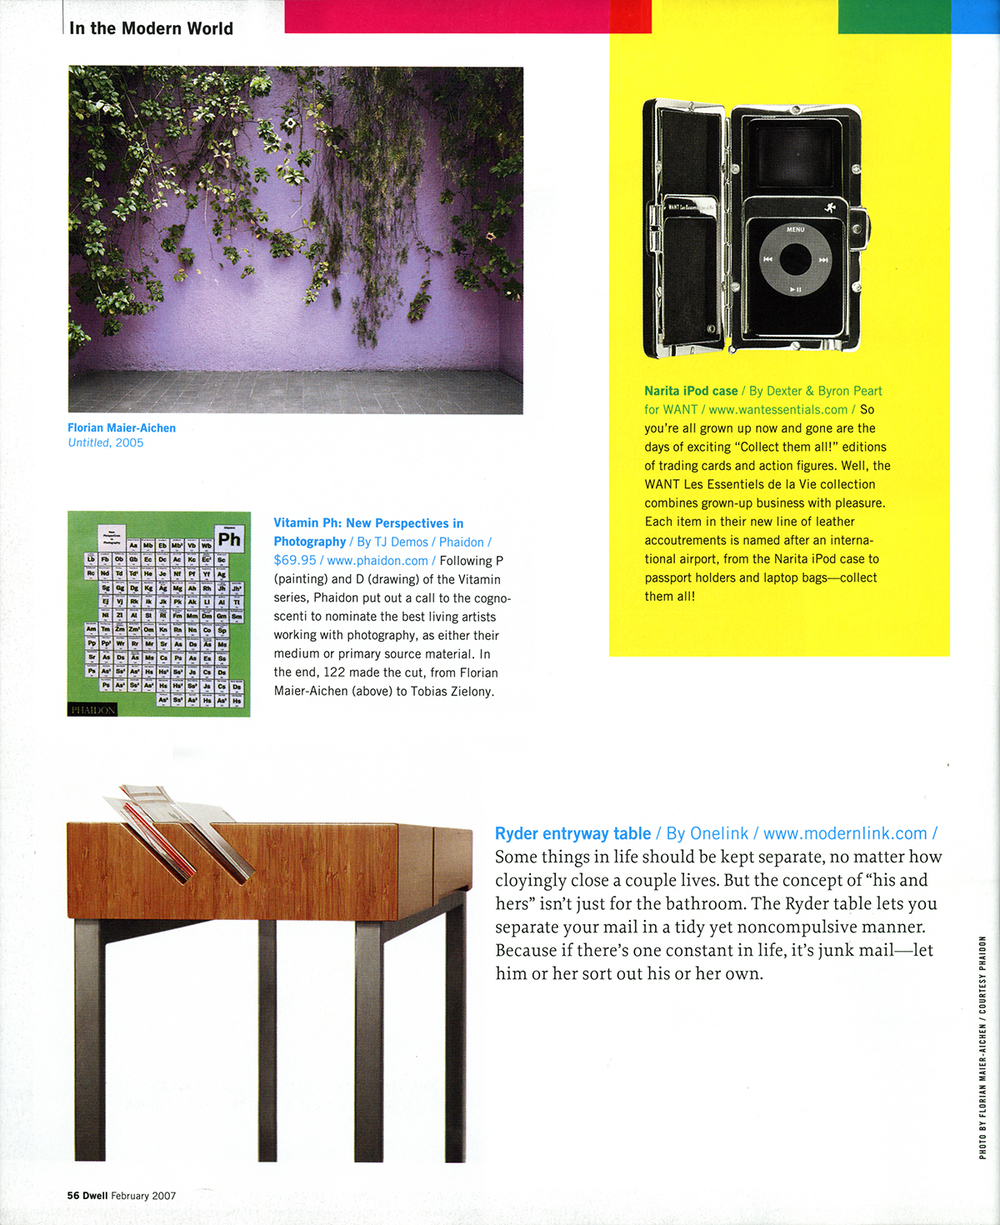 Modernlink's 'Ryder' entryway table and its built in mail slots featured in Dwell magazine's February issue.